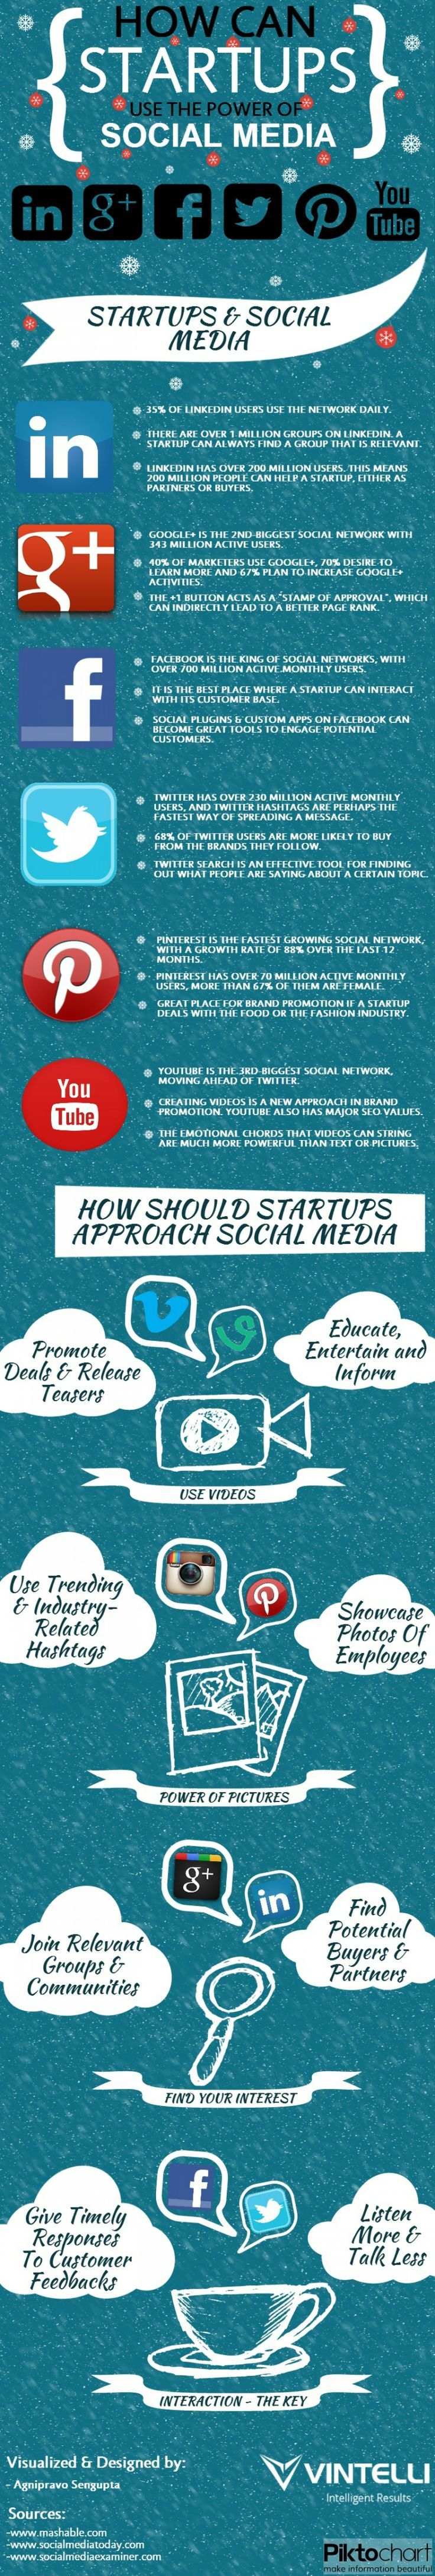 How #Startups Use the Power of #SocialMedia - #Infographic